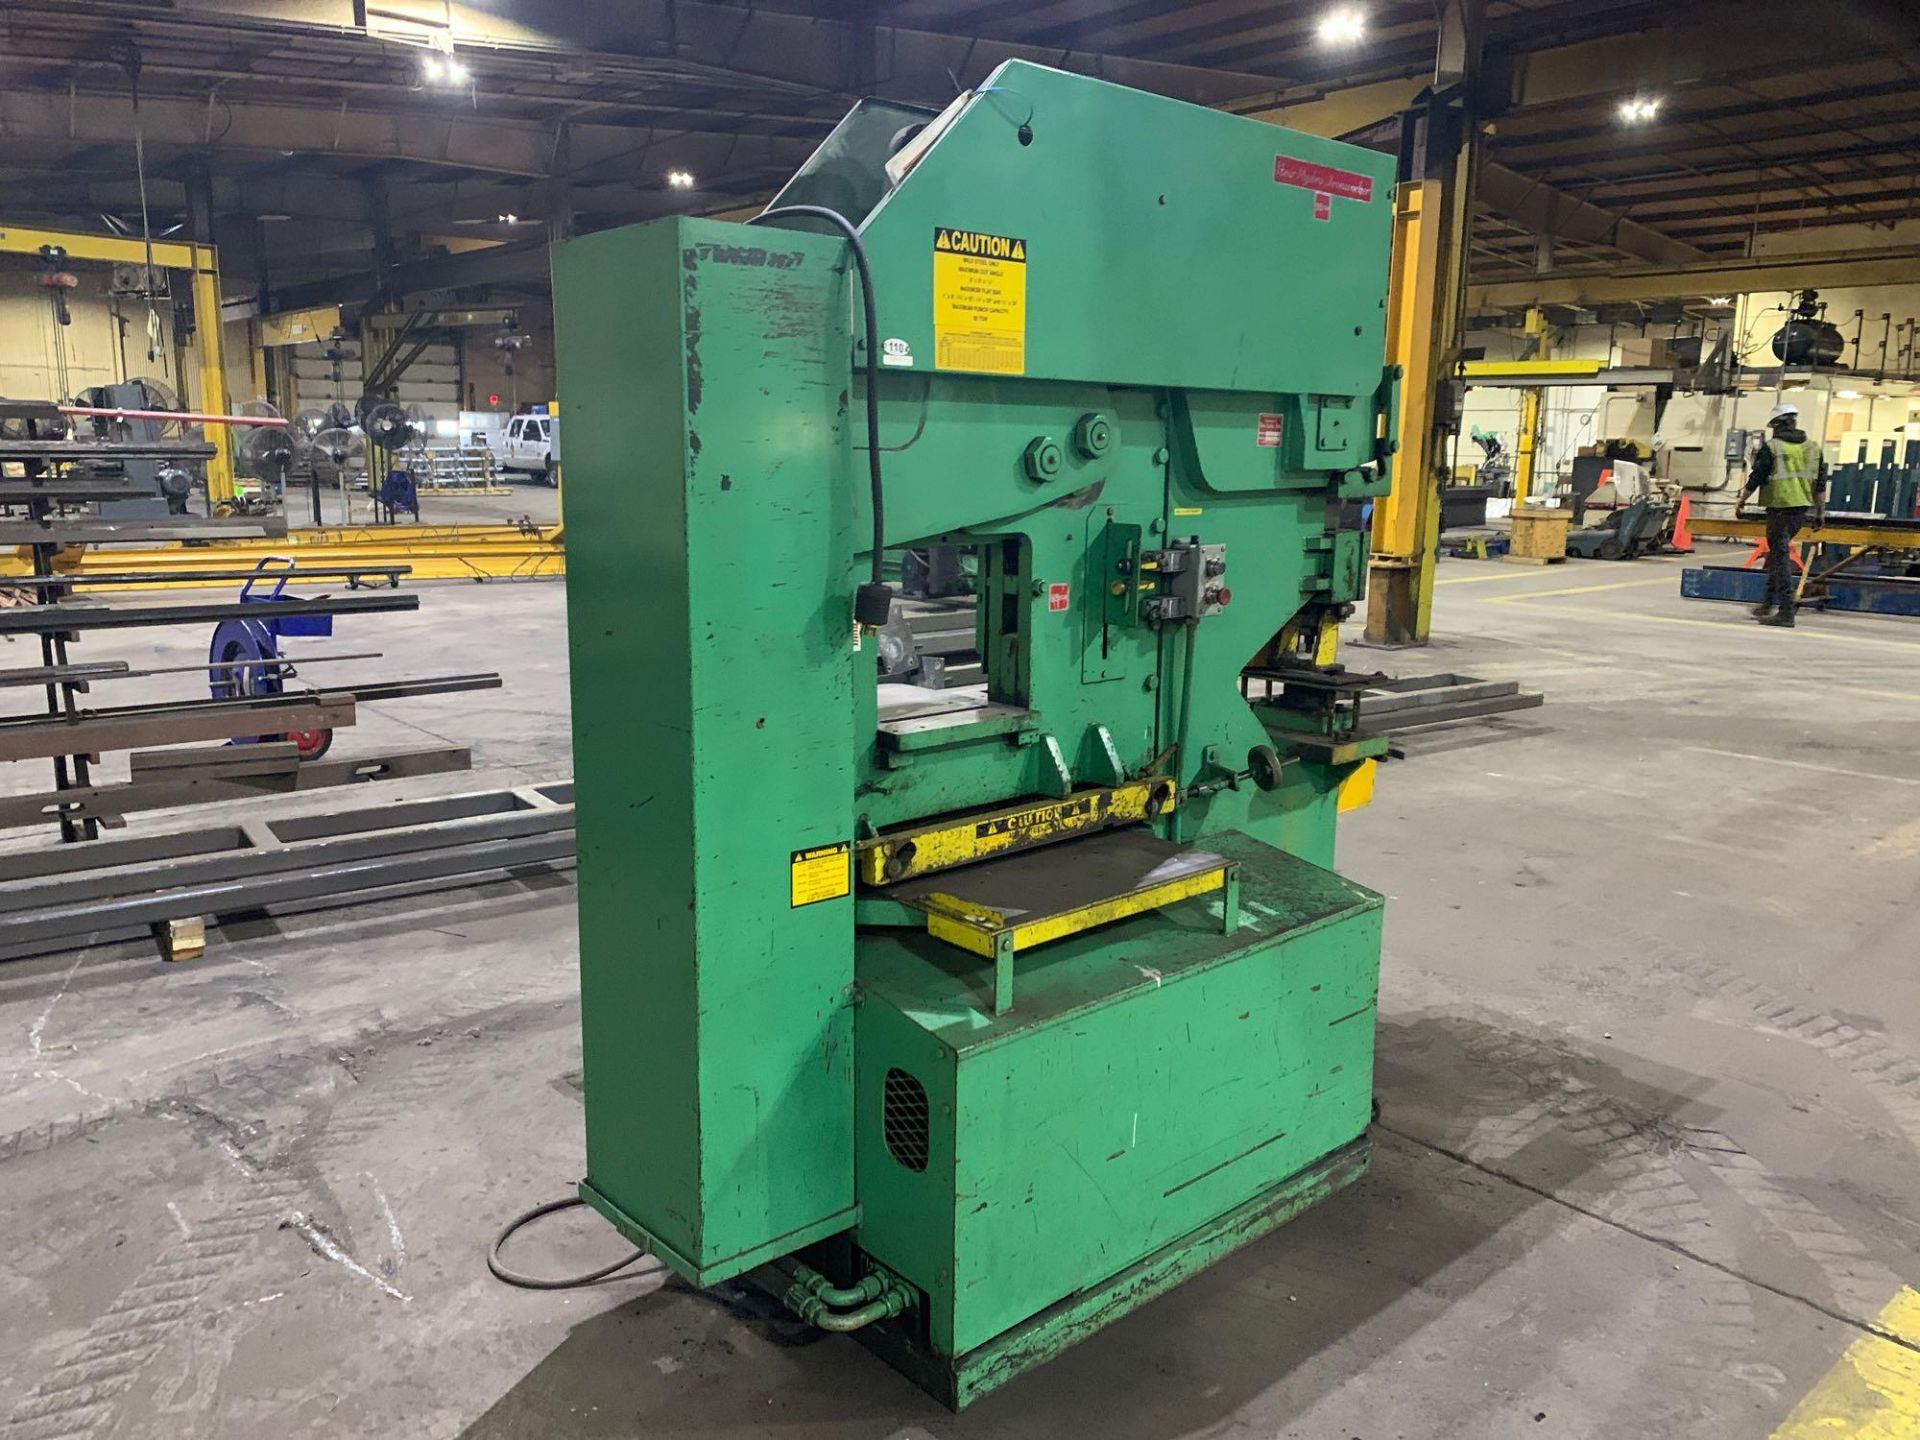 UNI-HYDRO 95-24 HYDRAULIC IRONWORKER Model: 95-24 Serial Number: 3P9560 Capacity: 95 Ton Punching Th - Image 3 of 18